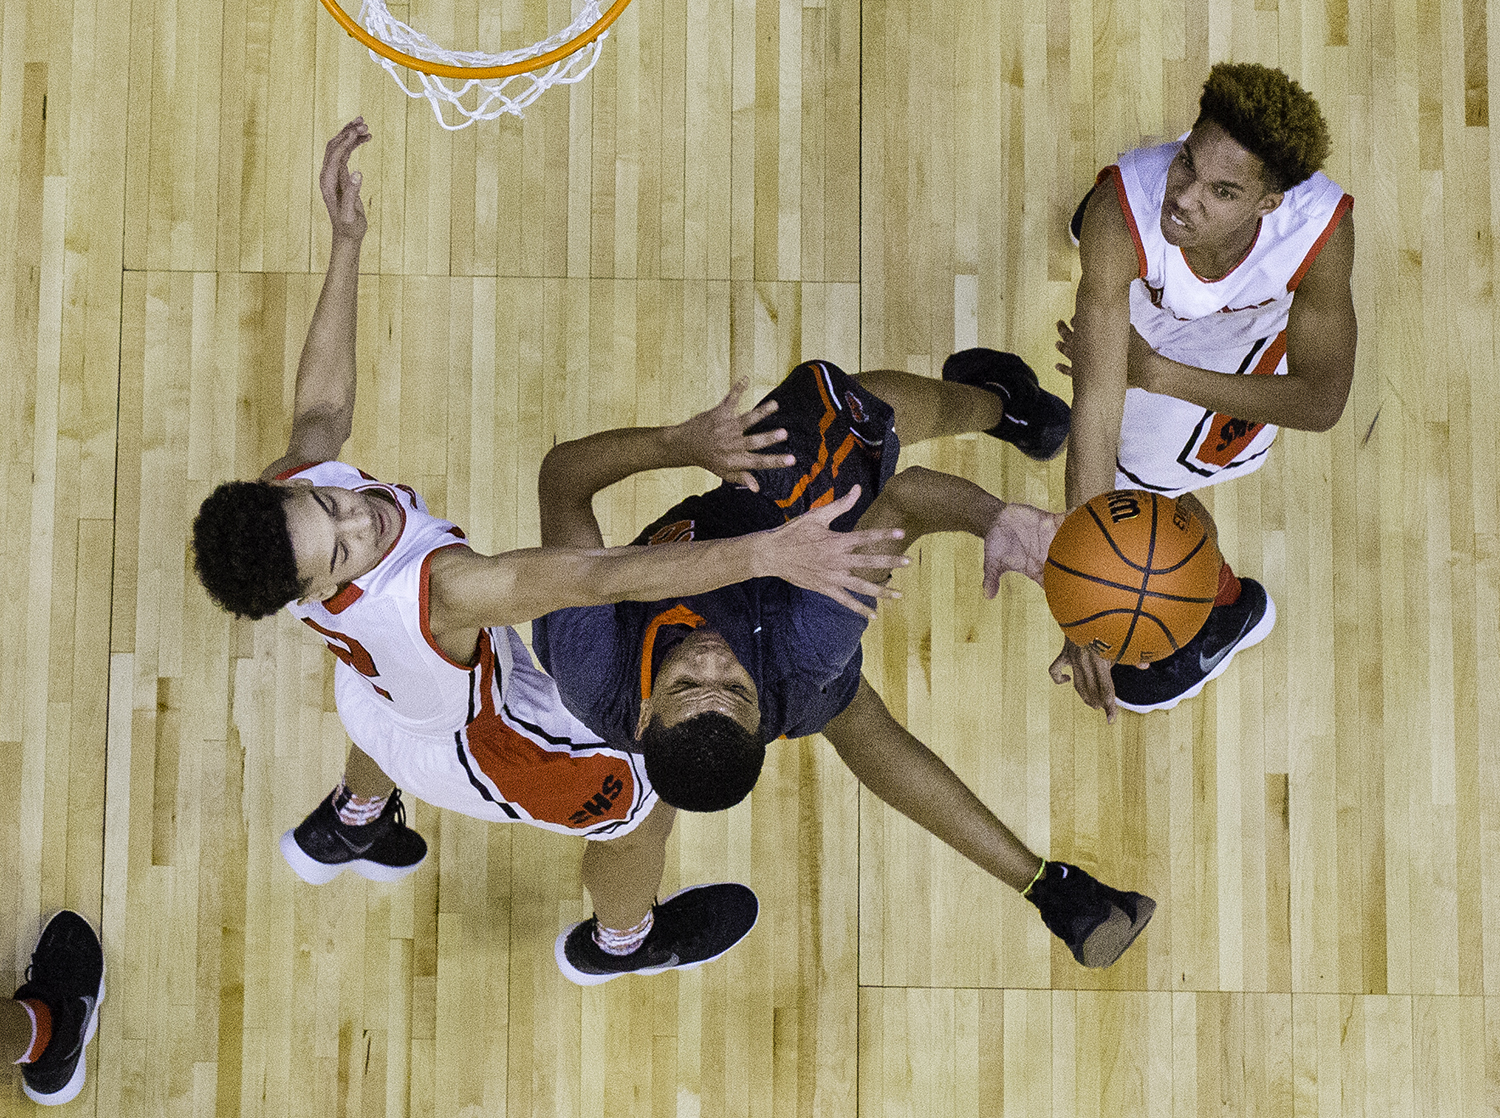 Lanphier's Cardell McGee shoots under pressure from Springfield during the Boys City Tournament at the Bank of Springfield Center Thursday, Jan. 18, 2018. [Ted Schurter/The State Journal-Register]